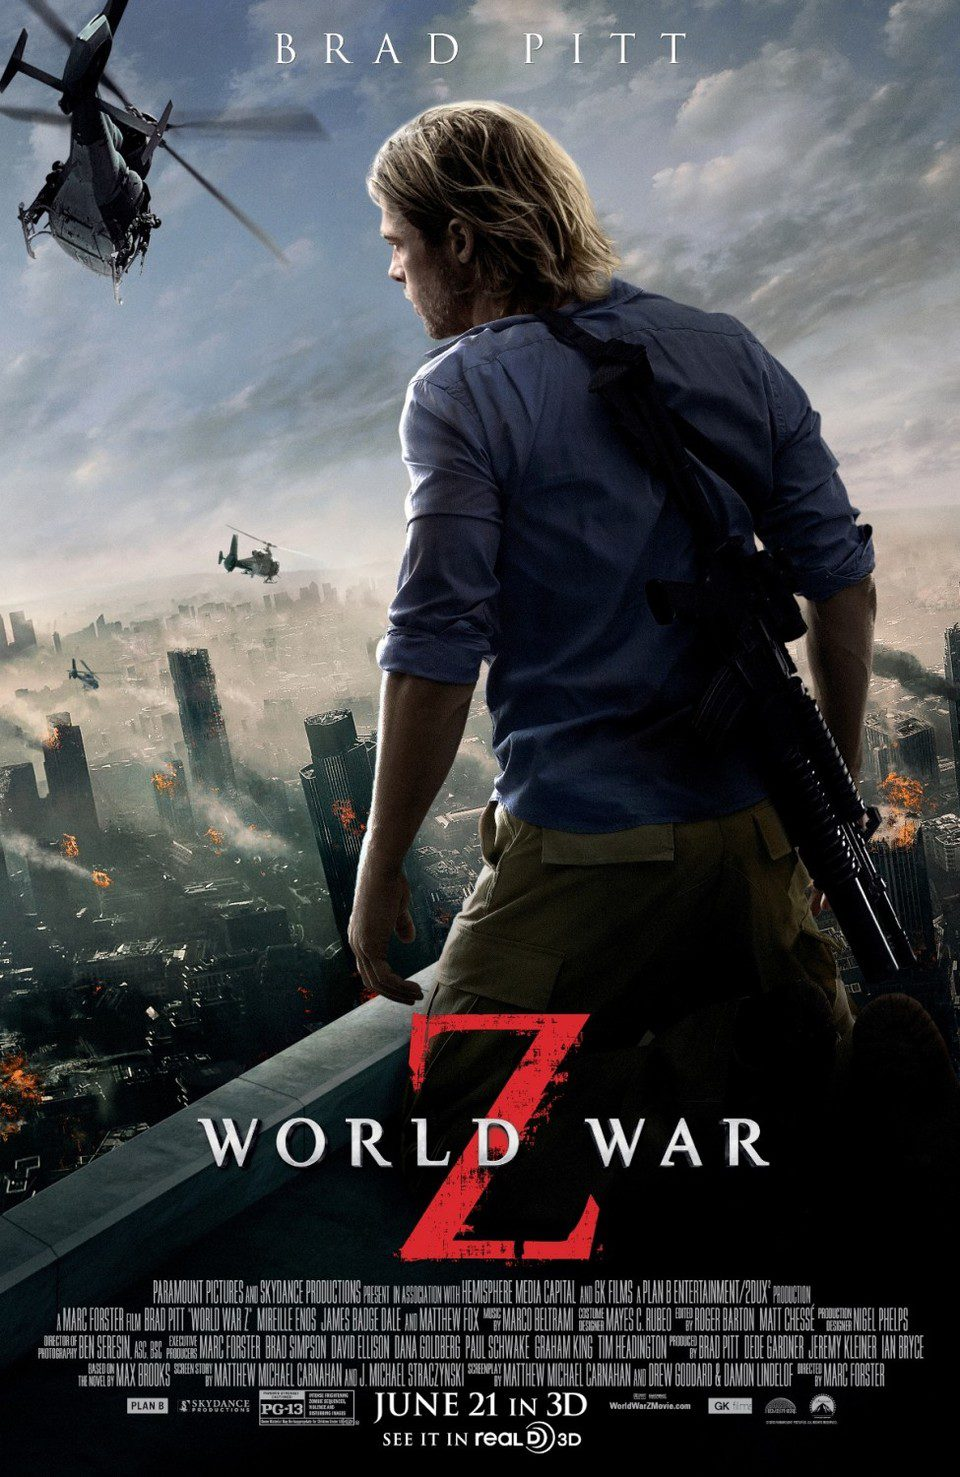 EEUU 2 poster for World War Z